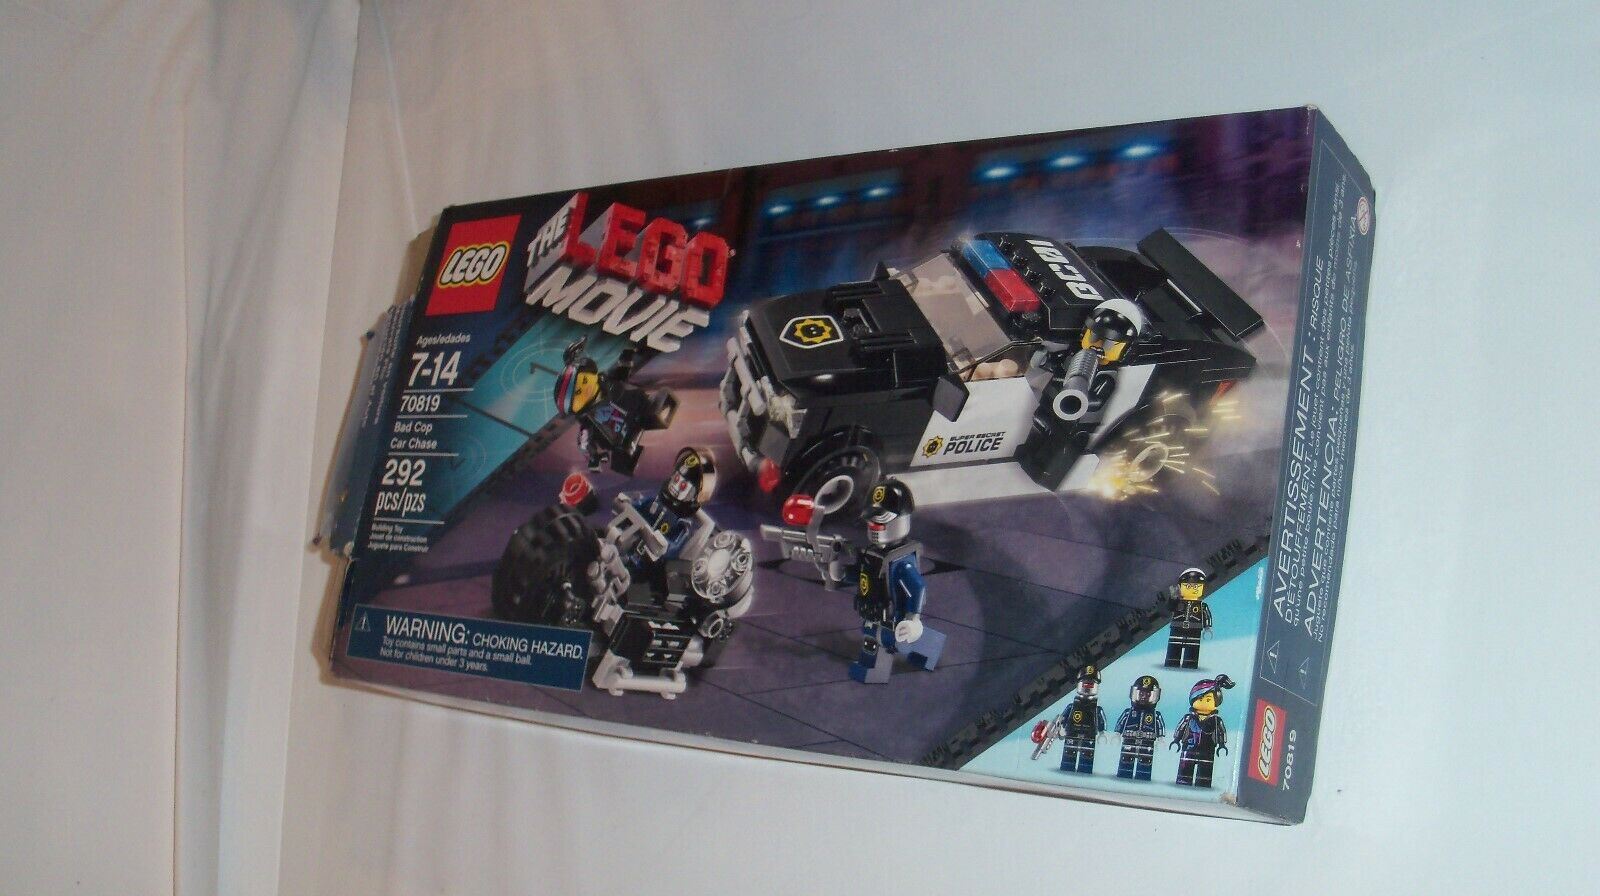 Lego Movie Bad Cop Car Chase  70819 Complete with box